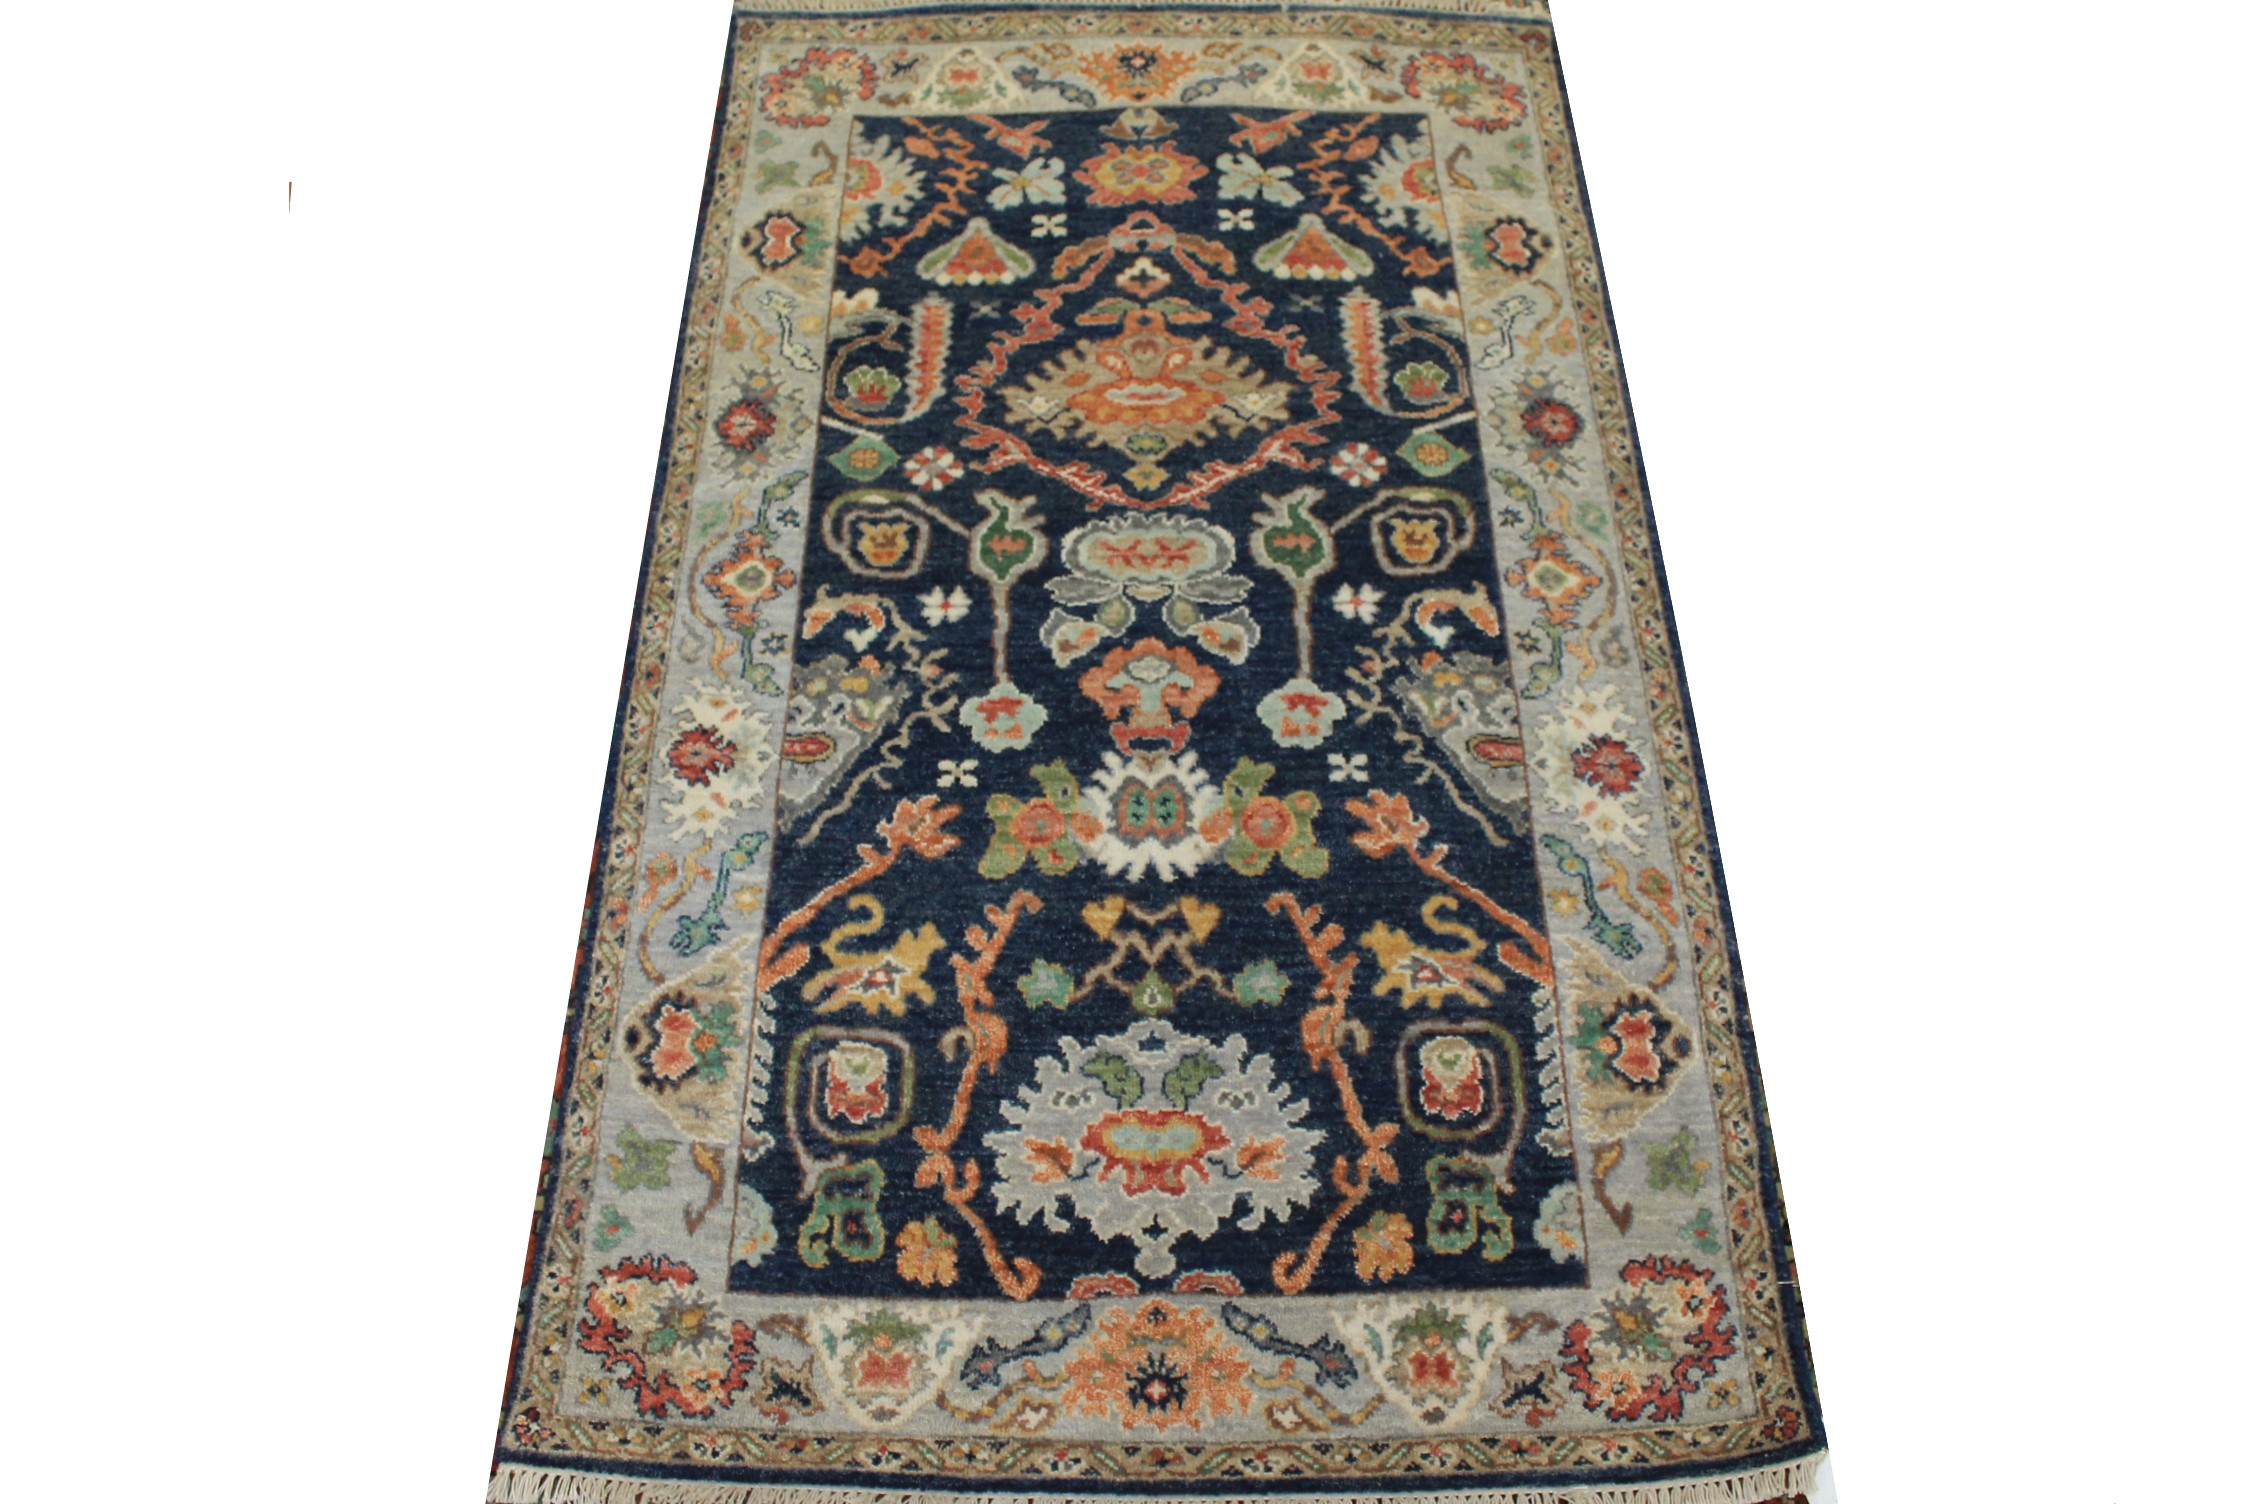 3x5 Traditional Hand Knotted Wool Area Rug - MR025013